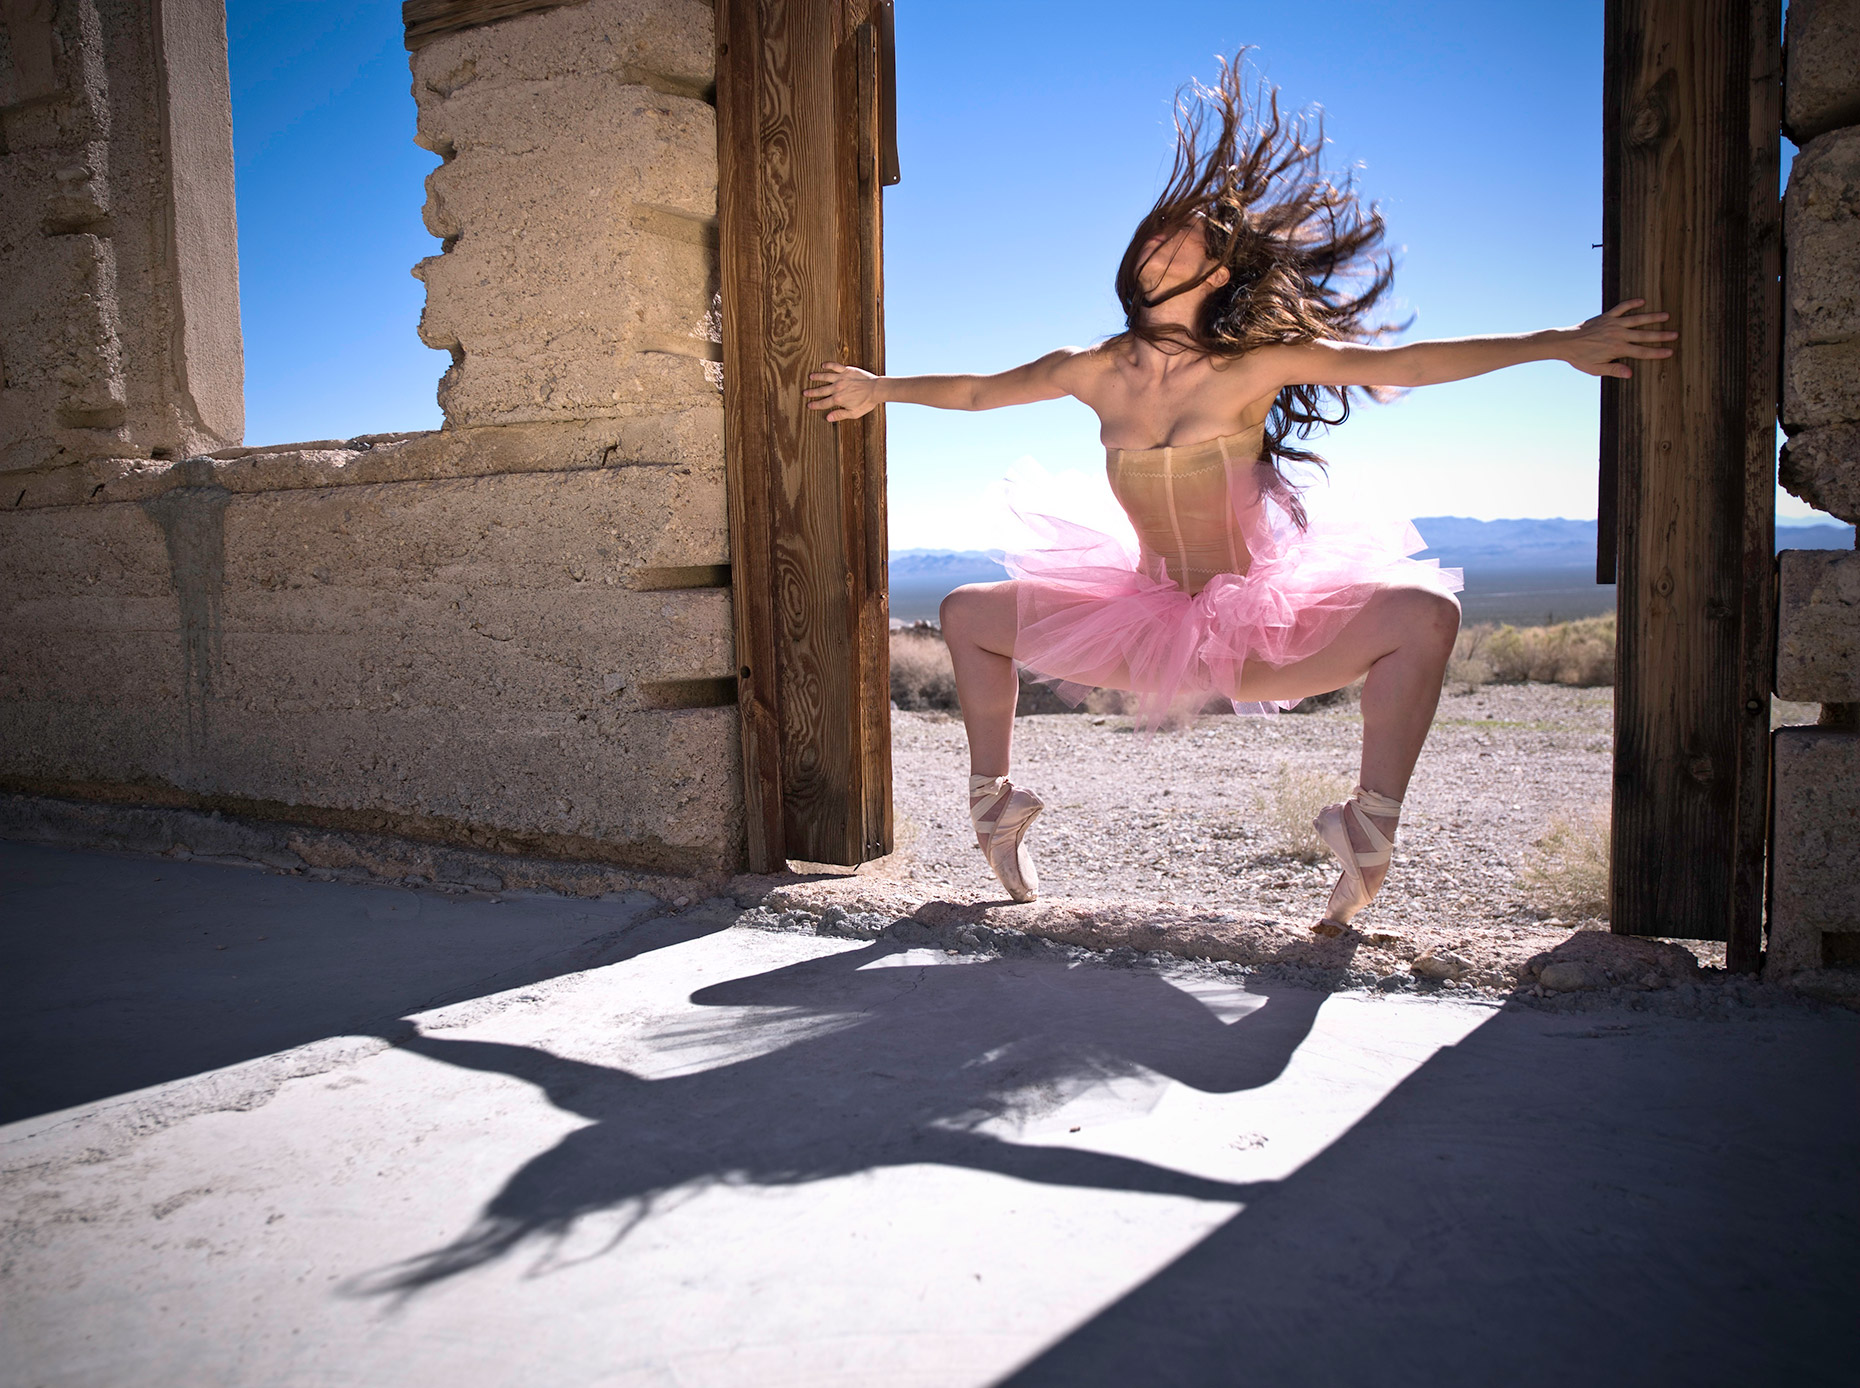 Dancer in pink in a doorway.